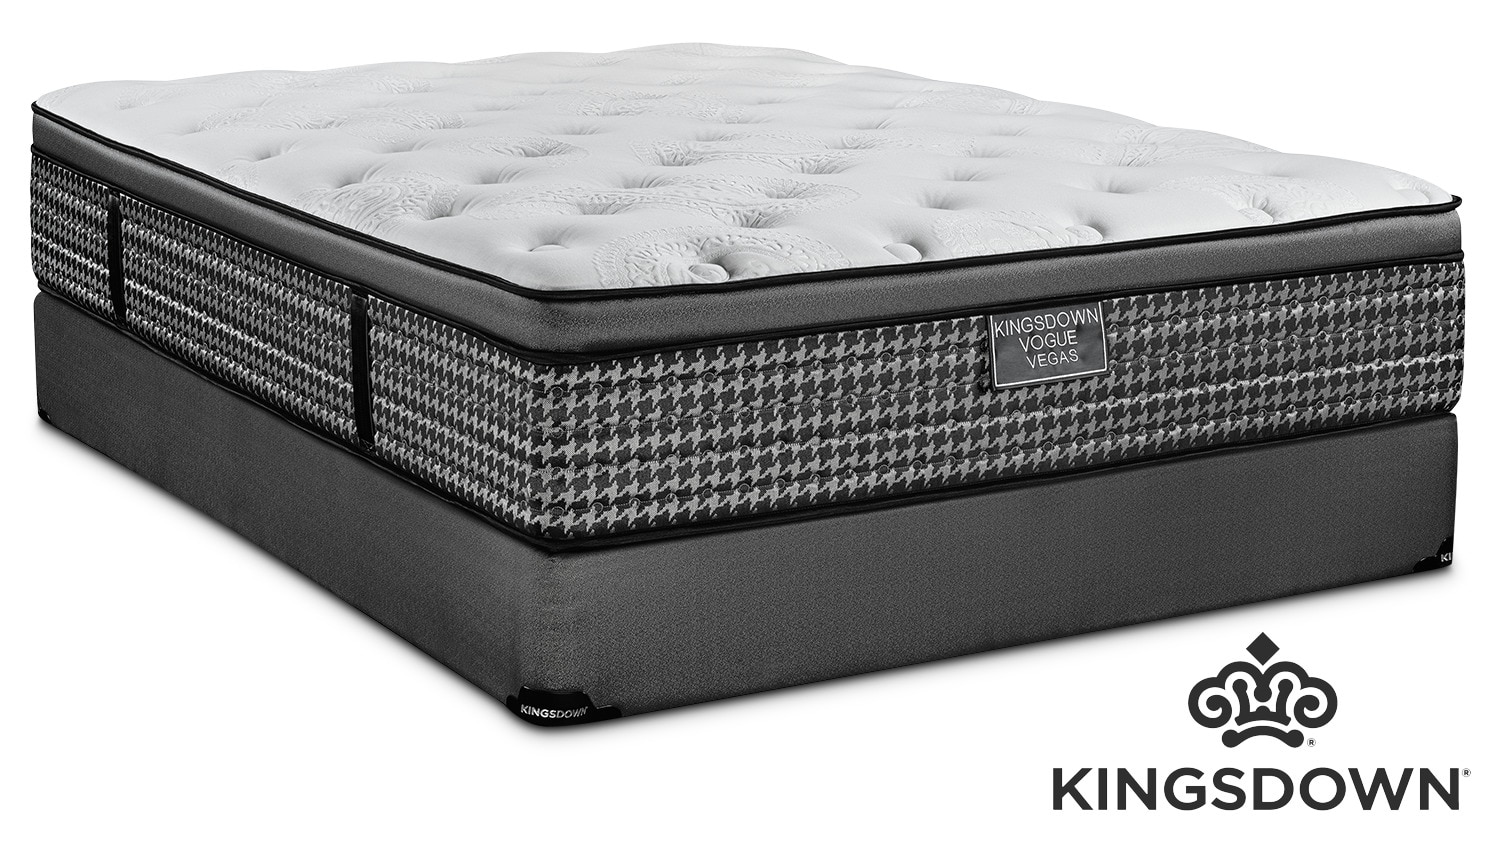 Kingsdown Vegas Cushion Firm Full Mattress and Boxspring Set